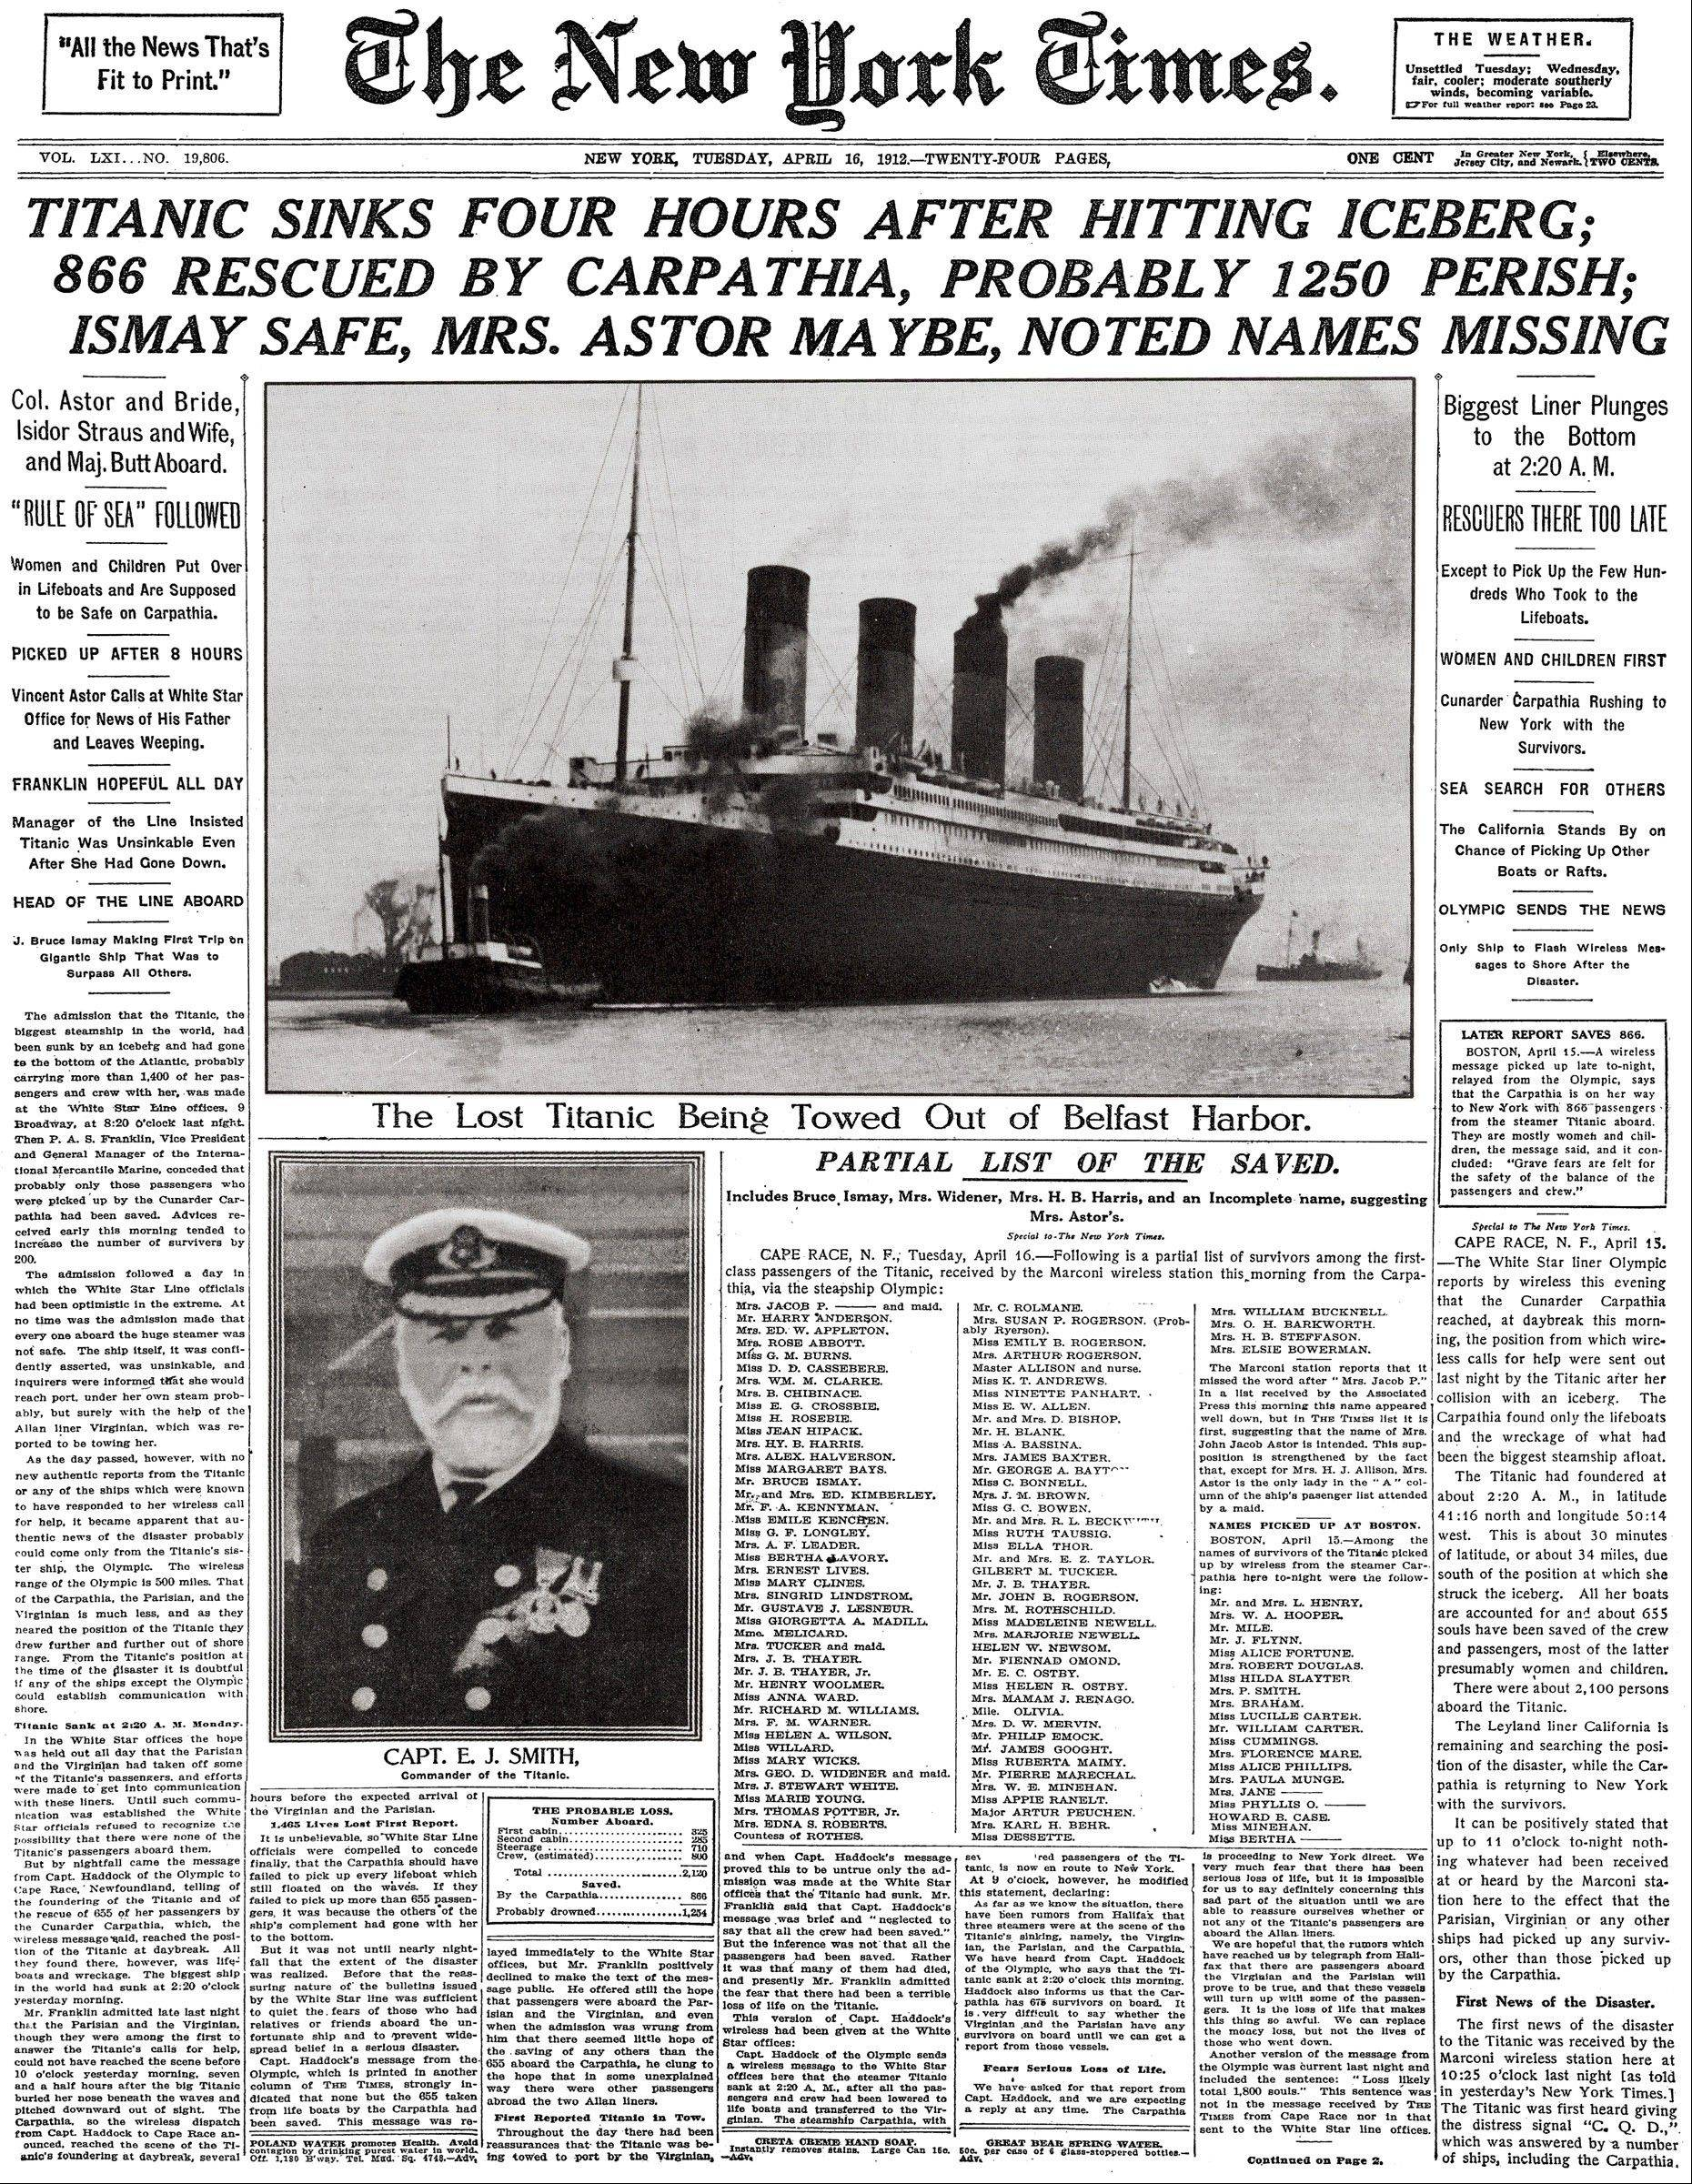 "This image provided by The New York Times shows its April 16, 1912 front page coverage of the Titanic disaster. The largest ship afloat at the time, the Titanic sank in the North Atlantic Ocean on April 15, 1912, after colliding with an iceberg during her maiden voyage from Southampton to New York City. It was a news story that would change the news. From the moment that a brief Associated Press dispatch relayed the wireless distress call -- ""Titanic ... reported having struck an iceberg. The steamer said that immediate assistance was required"" _ reporters and editors scrambled. In ways that seem familiar today, they adapted a dawning newsgathering technology and organized saturation coverage and managed to cover what one authority calls ""the first really, truly international news event where anyone anywhere in the world could pick up a newspaper and read about it."""